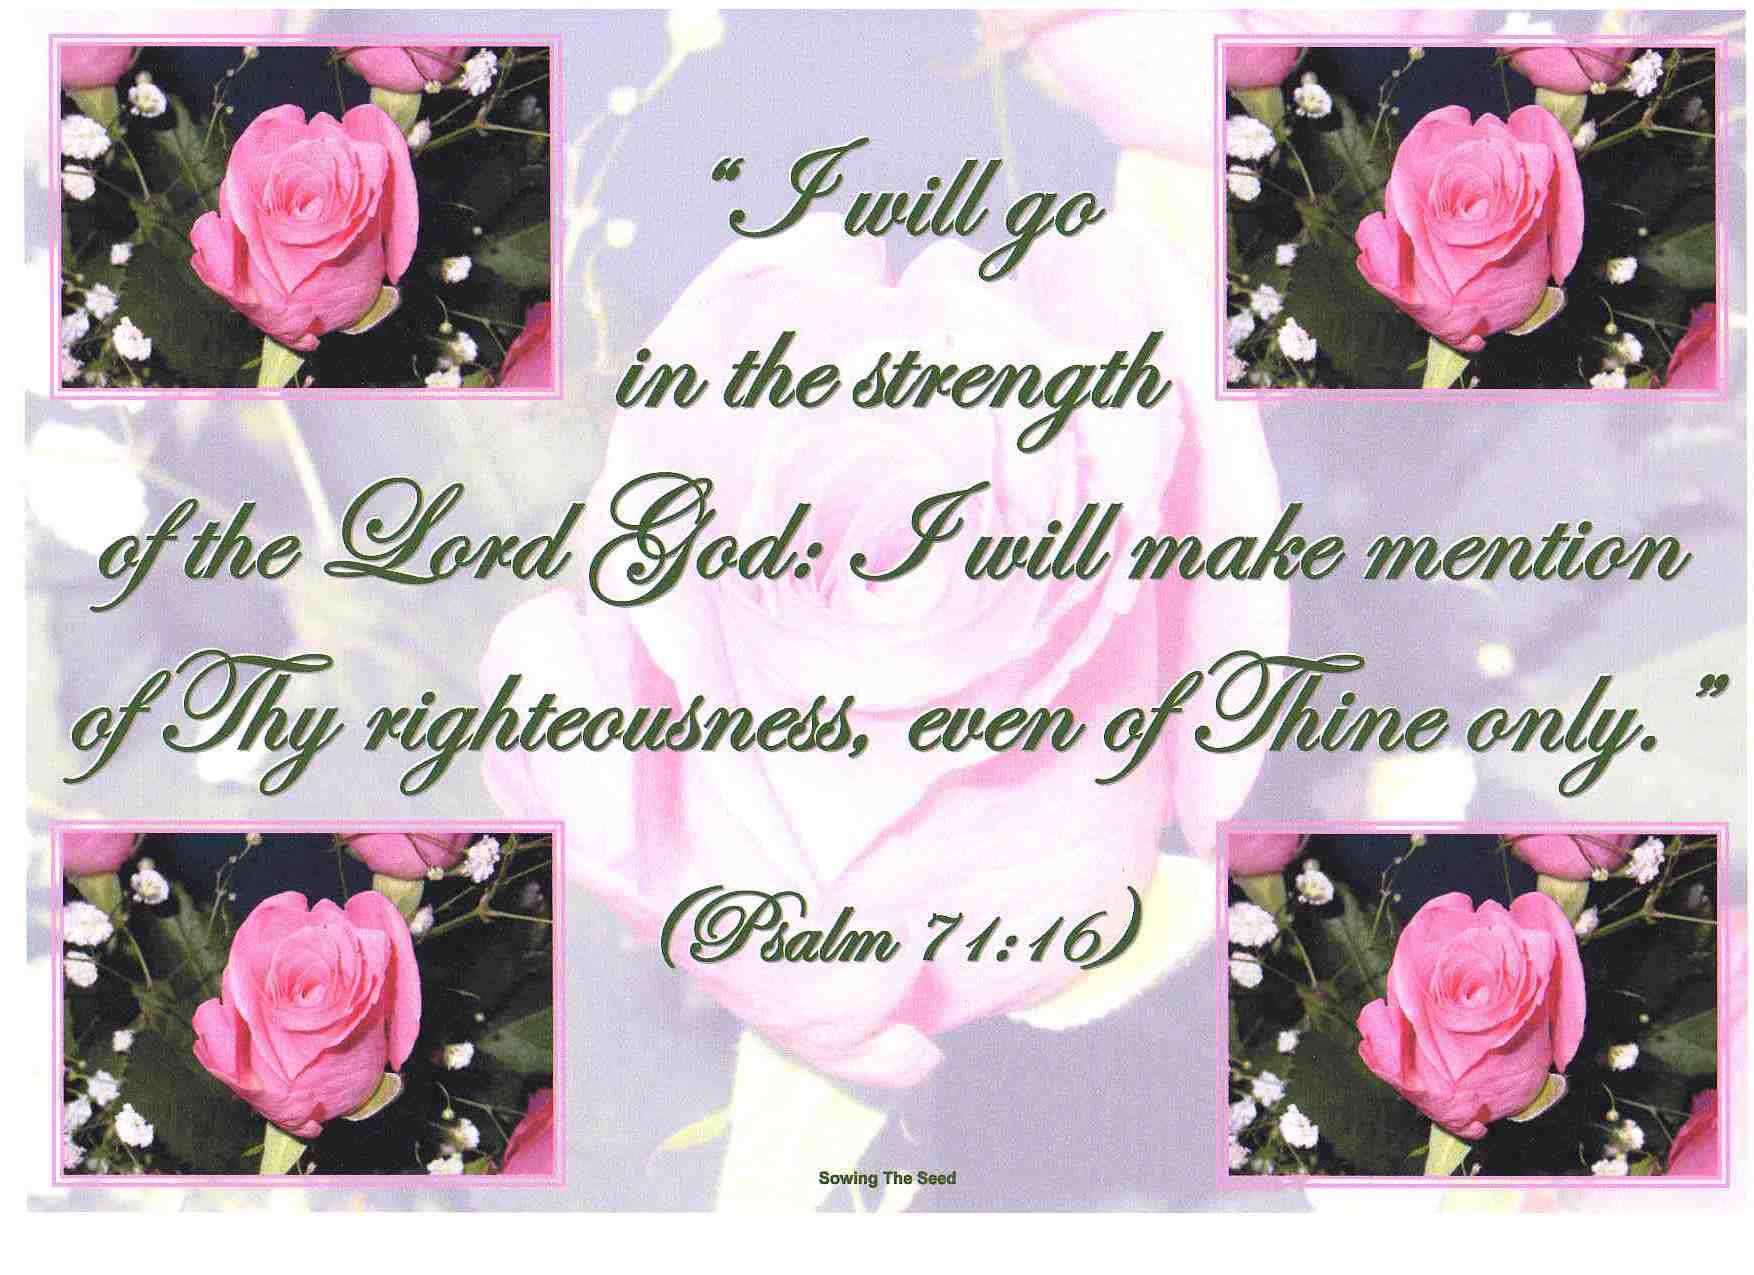 The Strength Of The Lord God